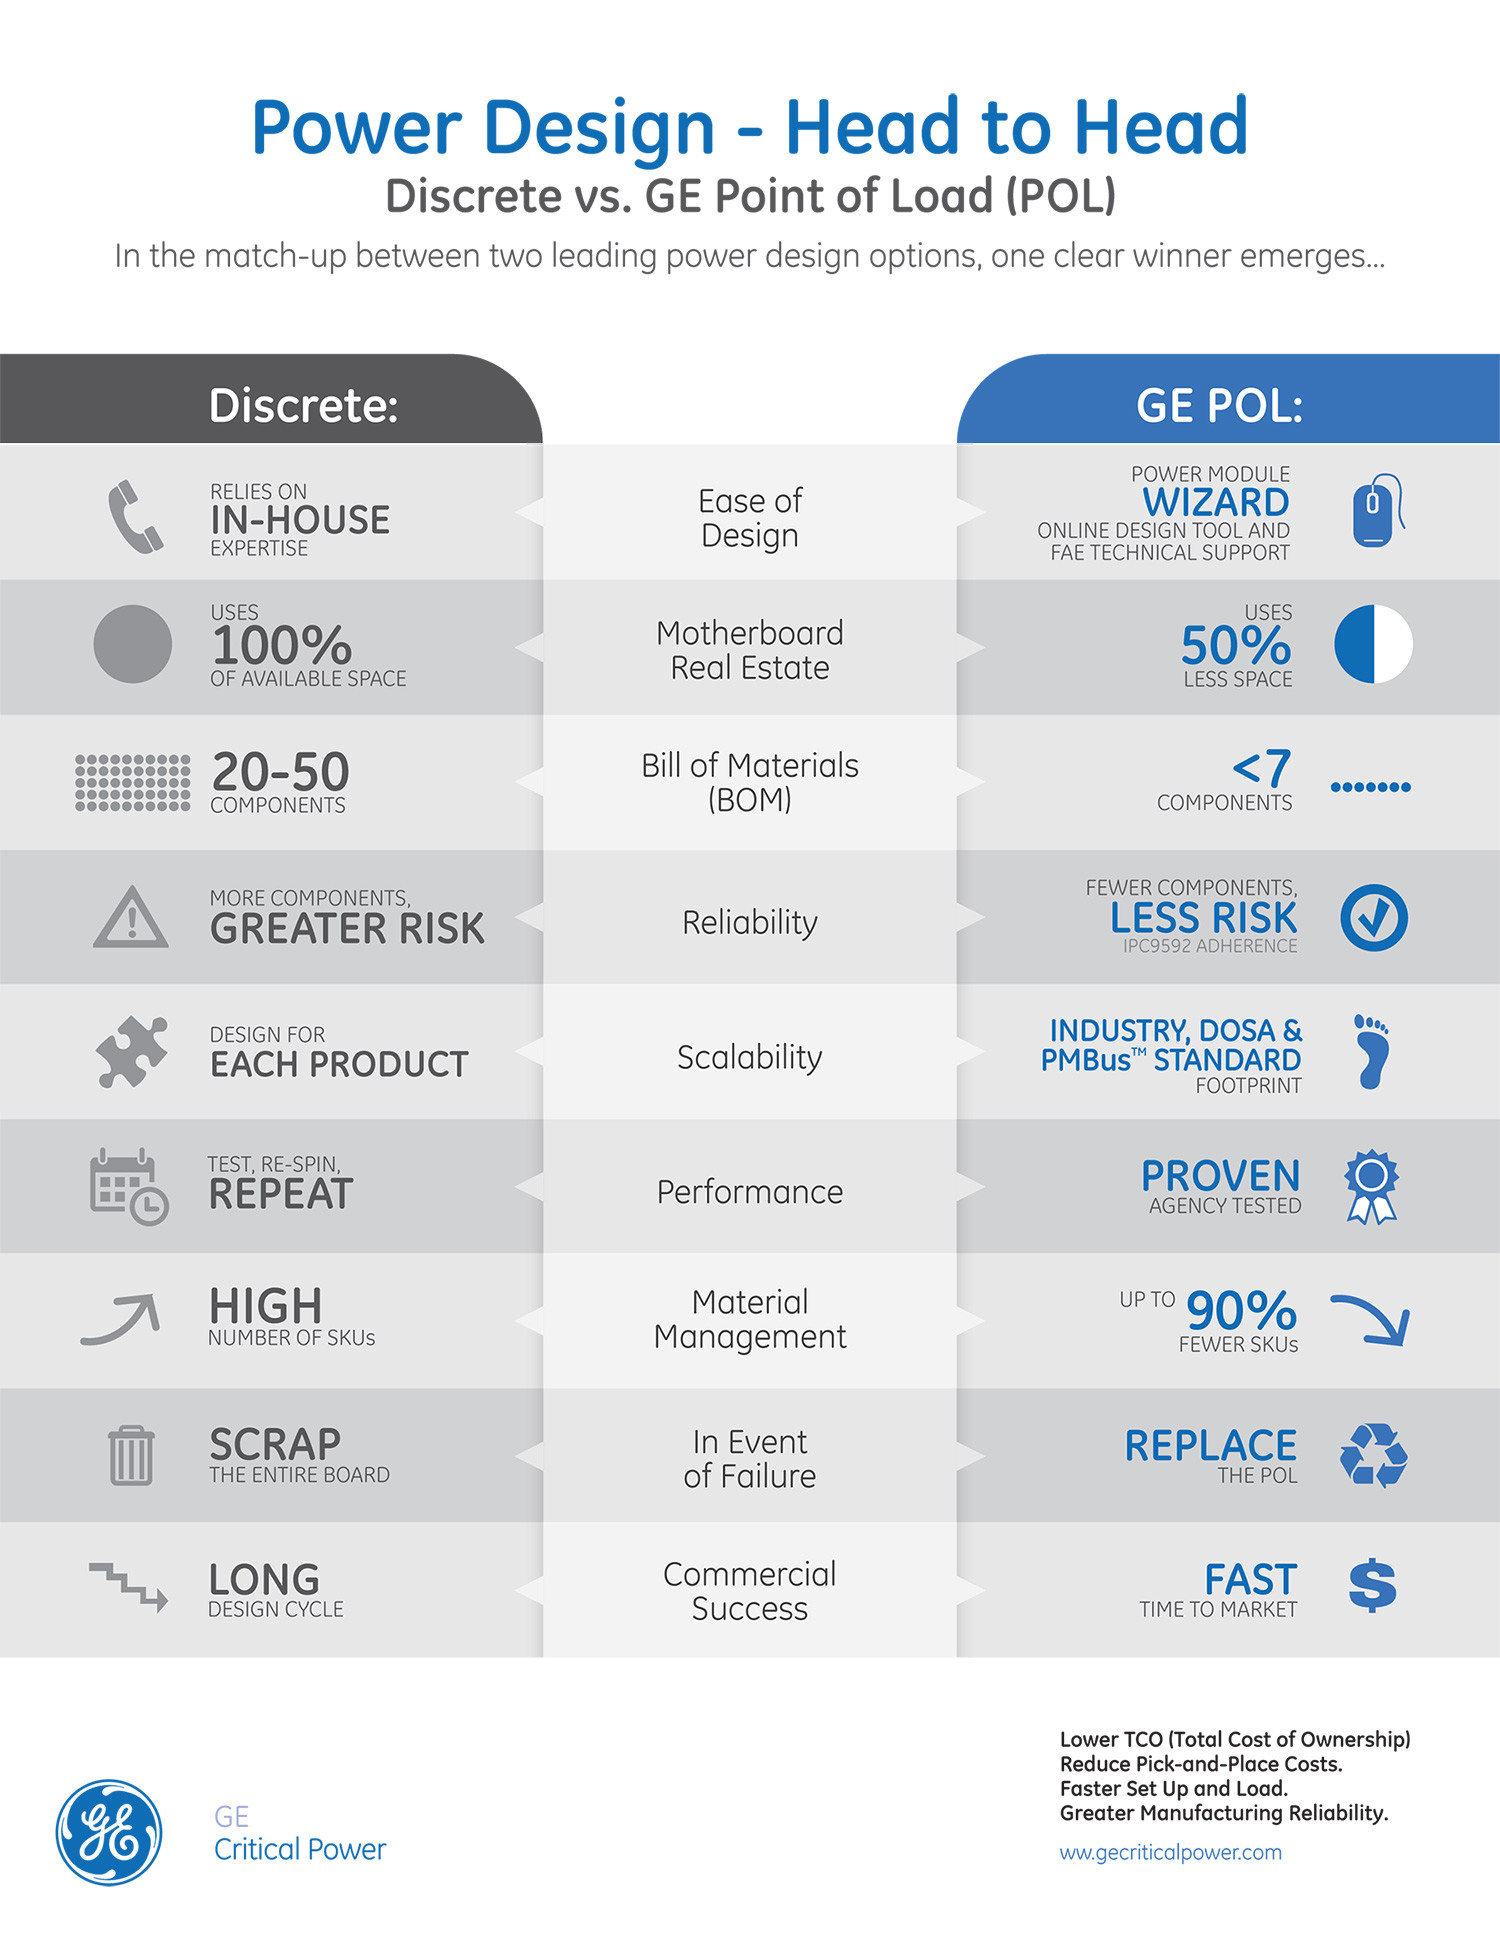 Power Design Head to Head: Discrete vs GE Point of Load (POL) modules